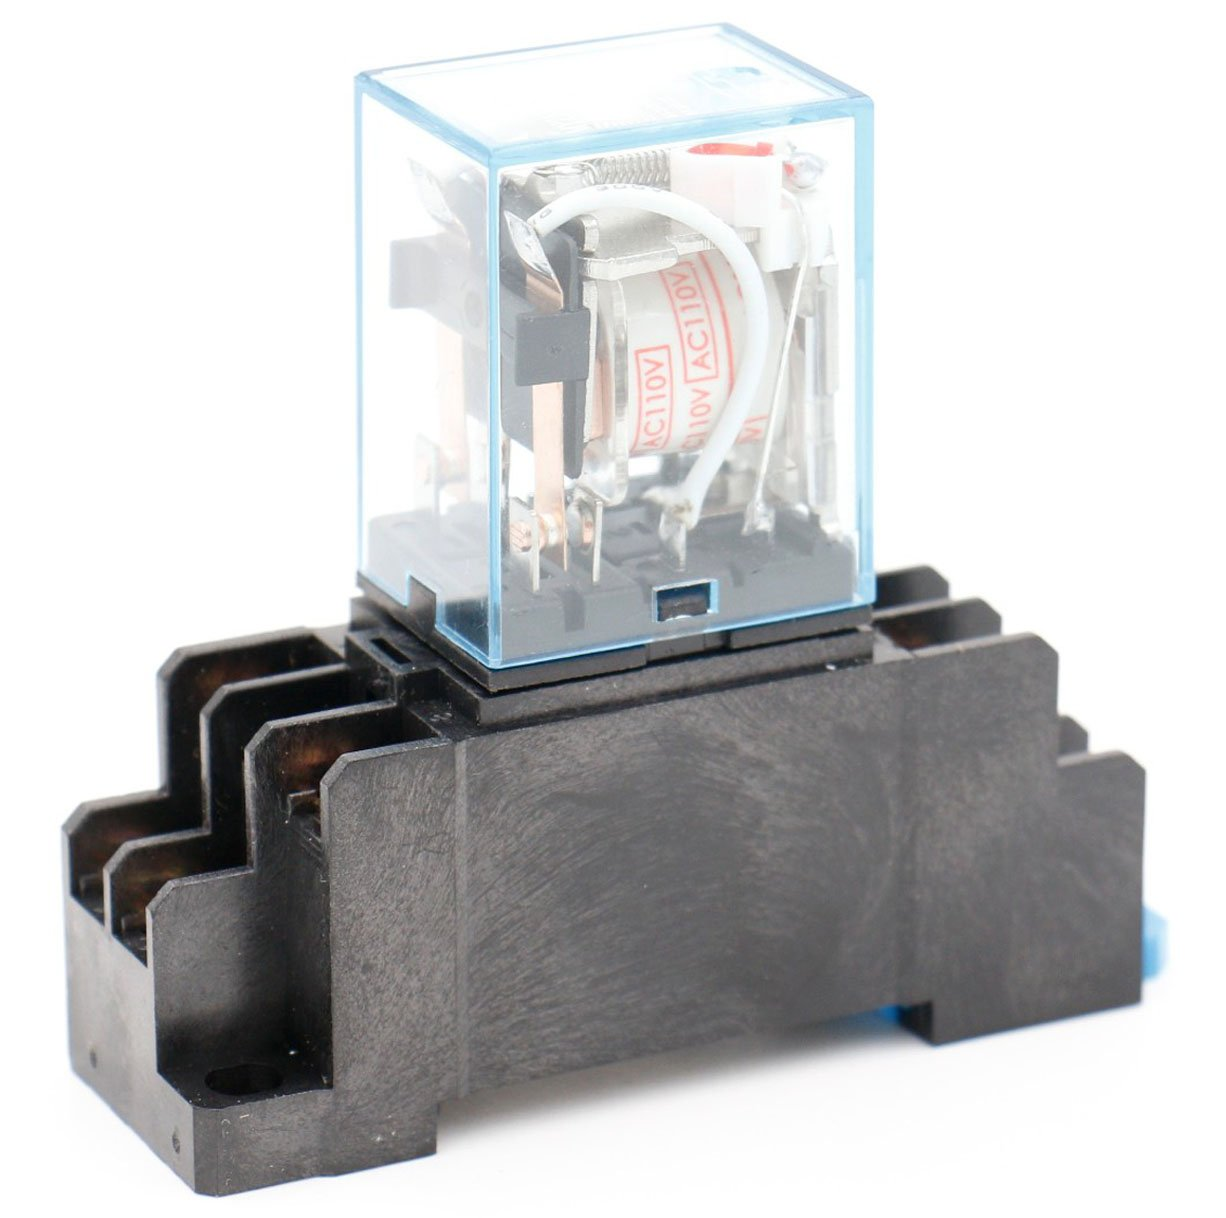 Baomain MY2NJ AC 110V Coil General Purpose Relay DPDT 8 Pin w Socket Base MY2NJ-AC110V